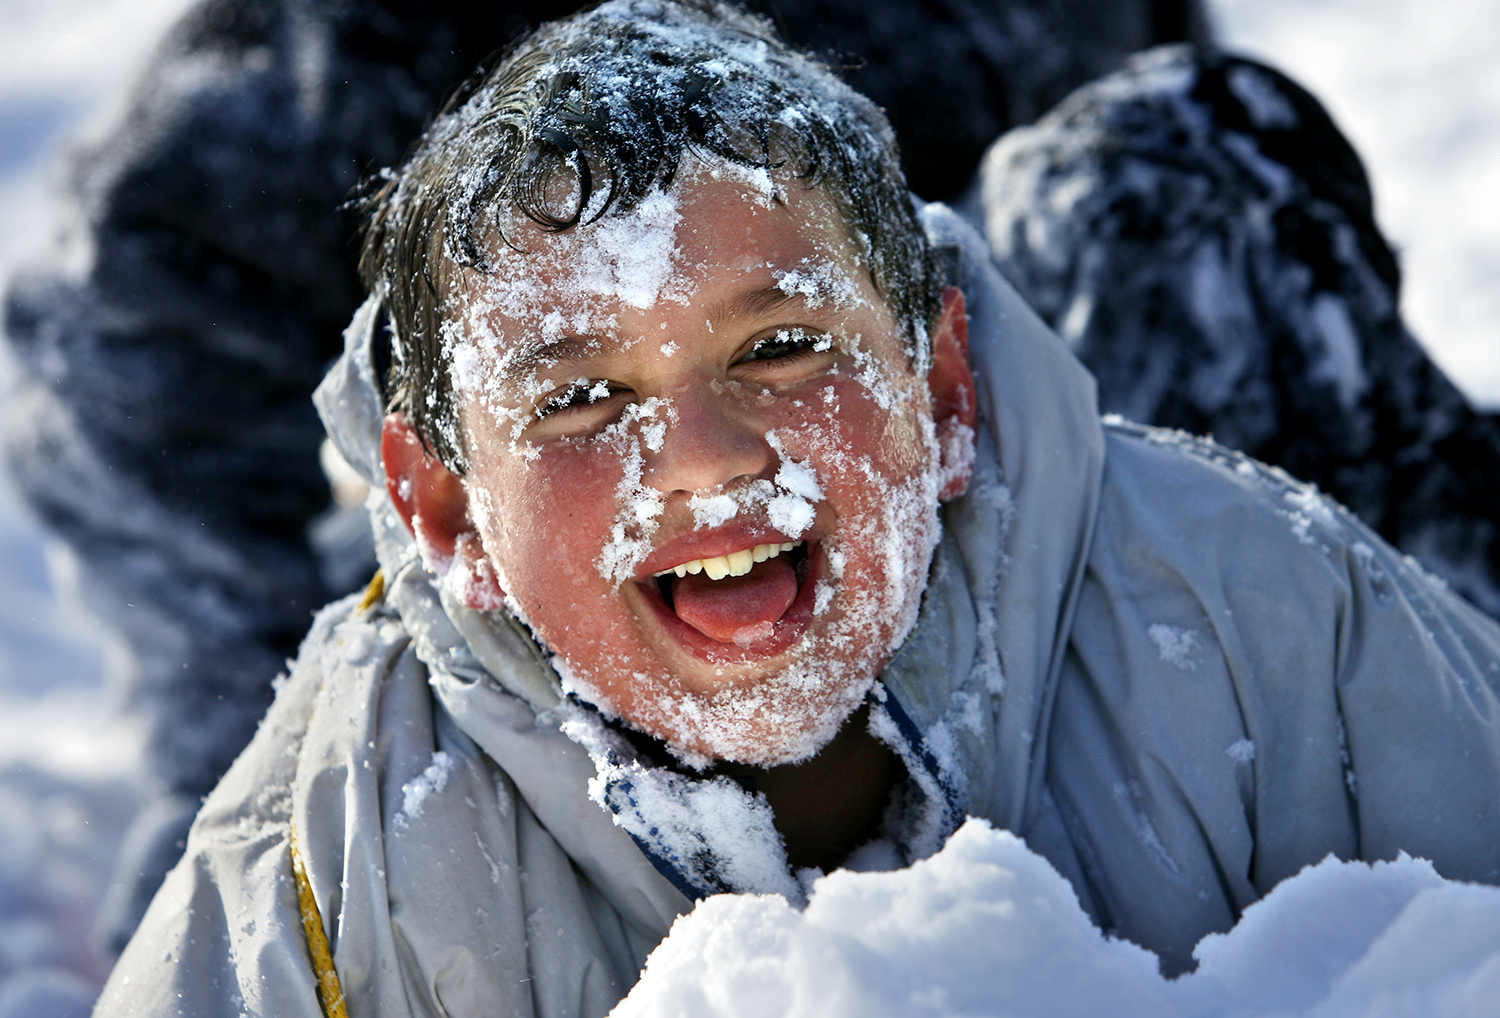 Matthew LaMarca, 11, comes up with a frosty face after sledding head first down a hill at Washington Park on Friday, Dec. 1, 2006. Jonathan Kirshner/The State Journal-Register